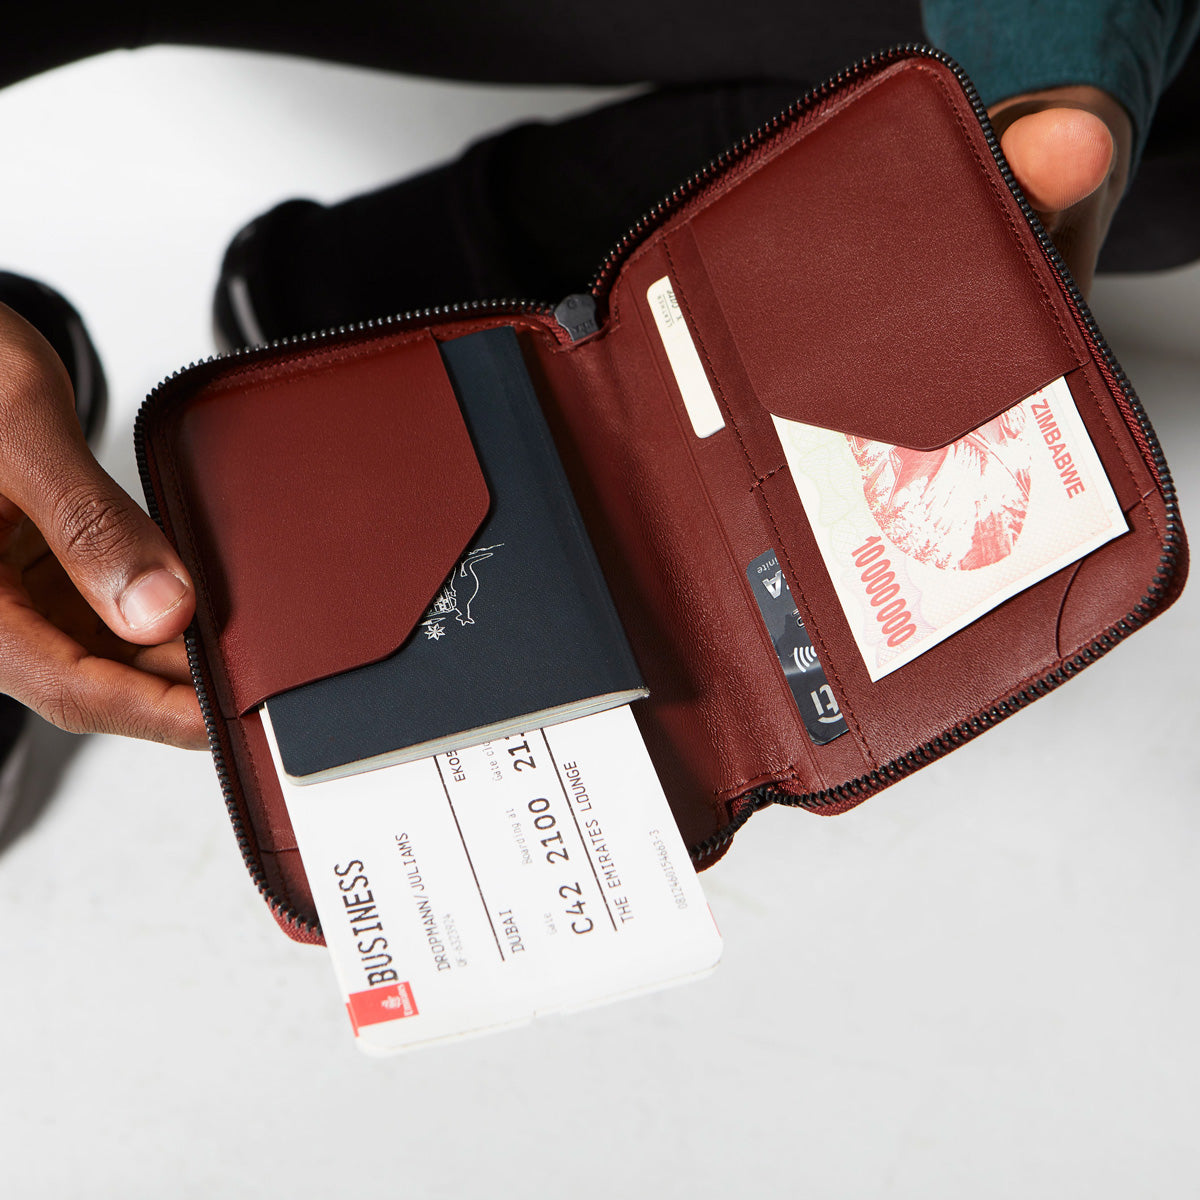 Status Anxiety Leather Travel Wallet Vow Cognac